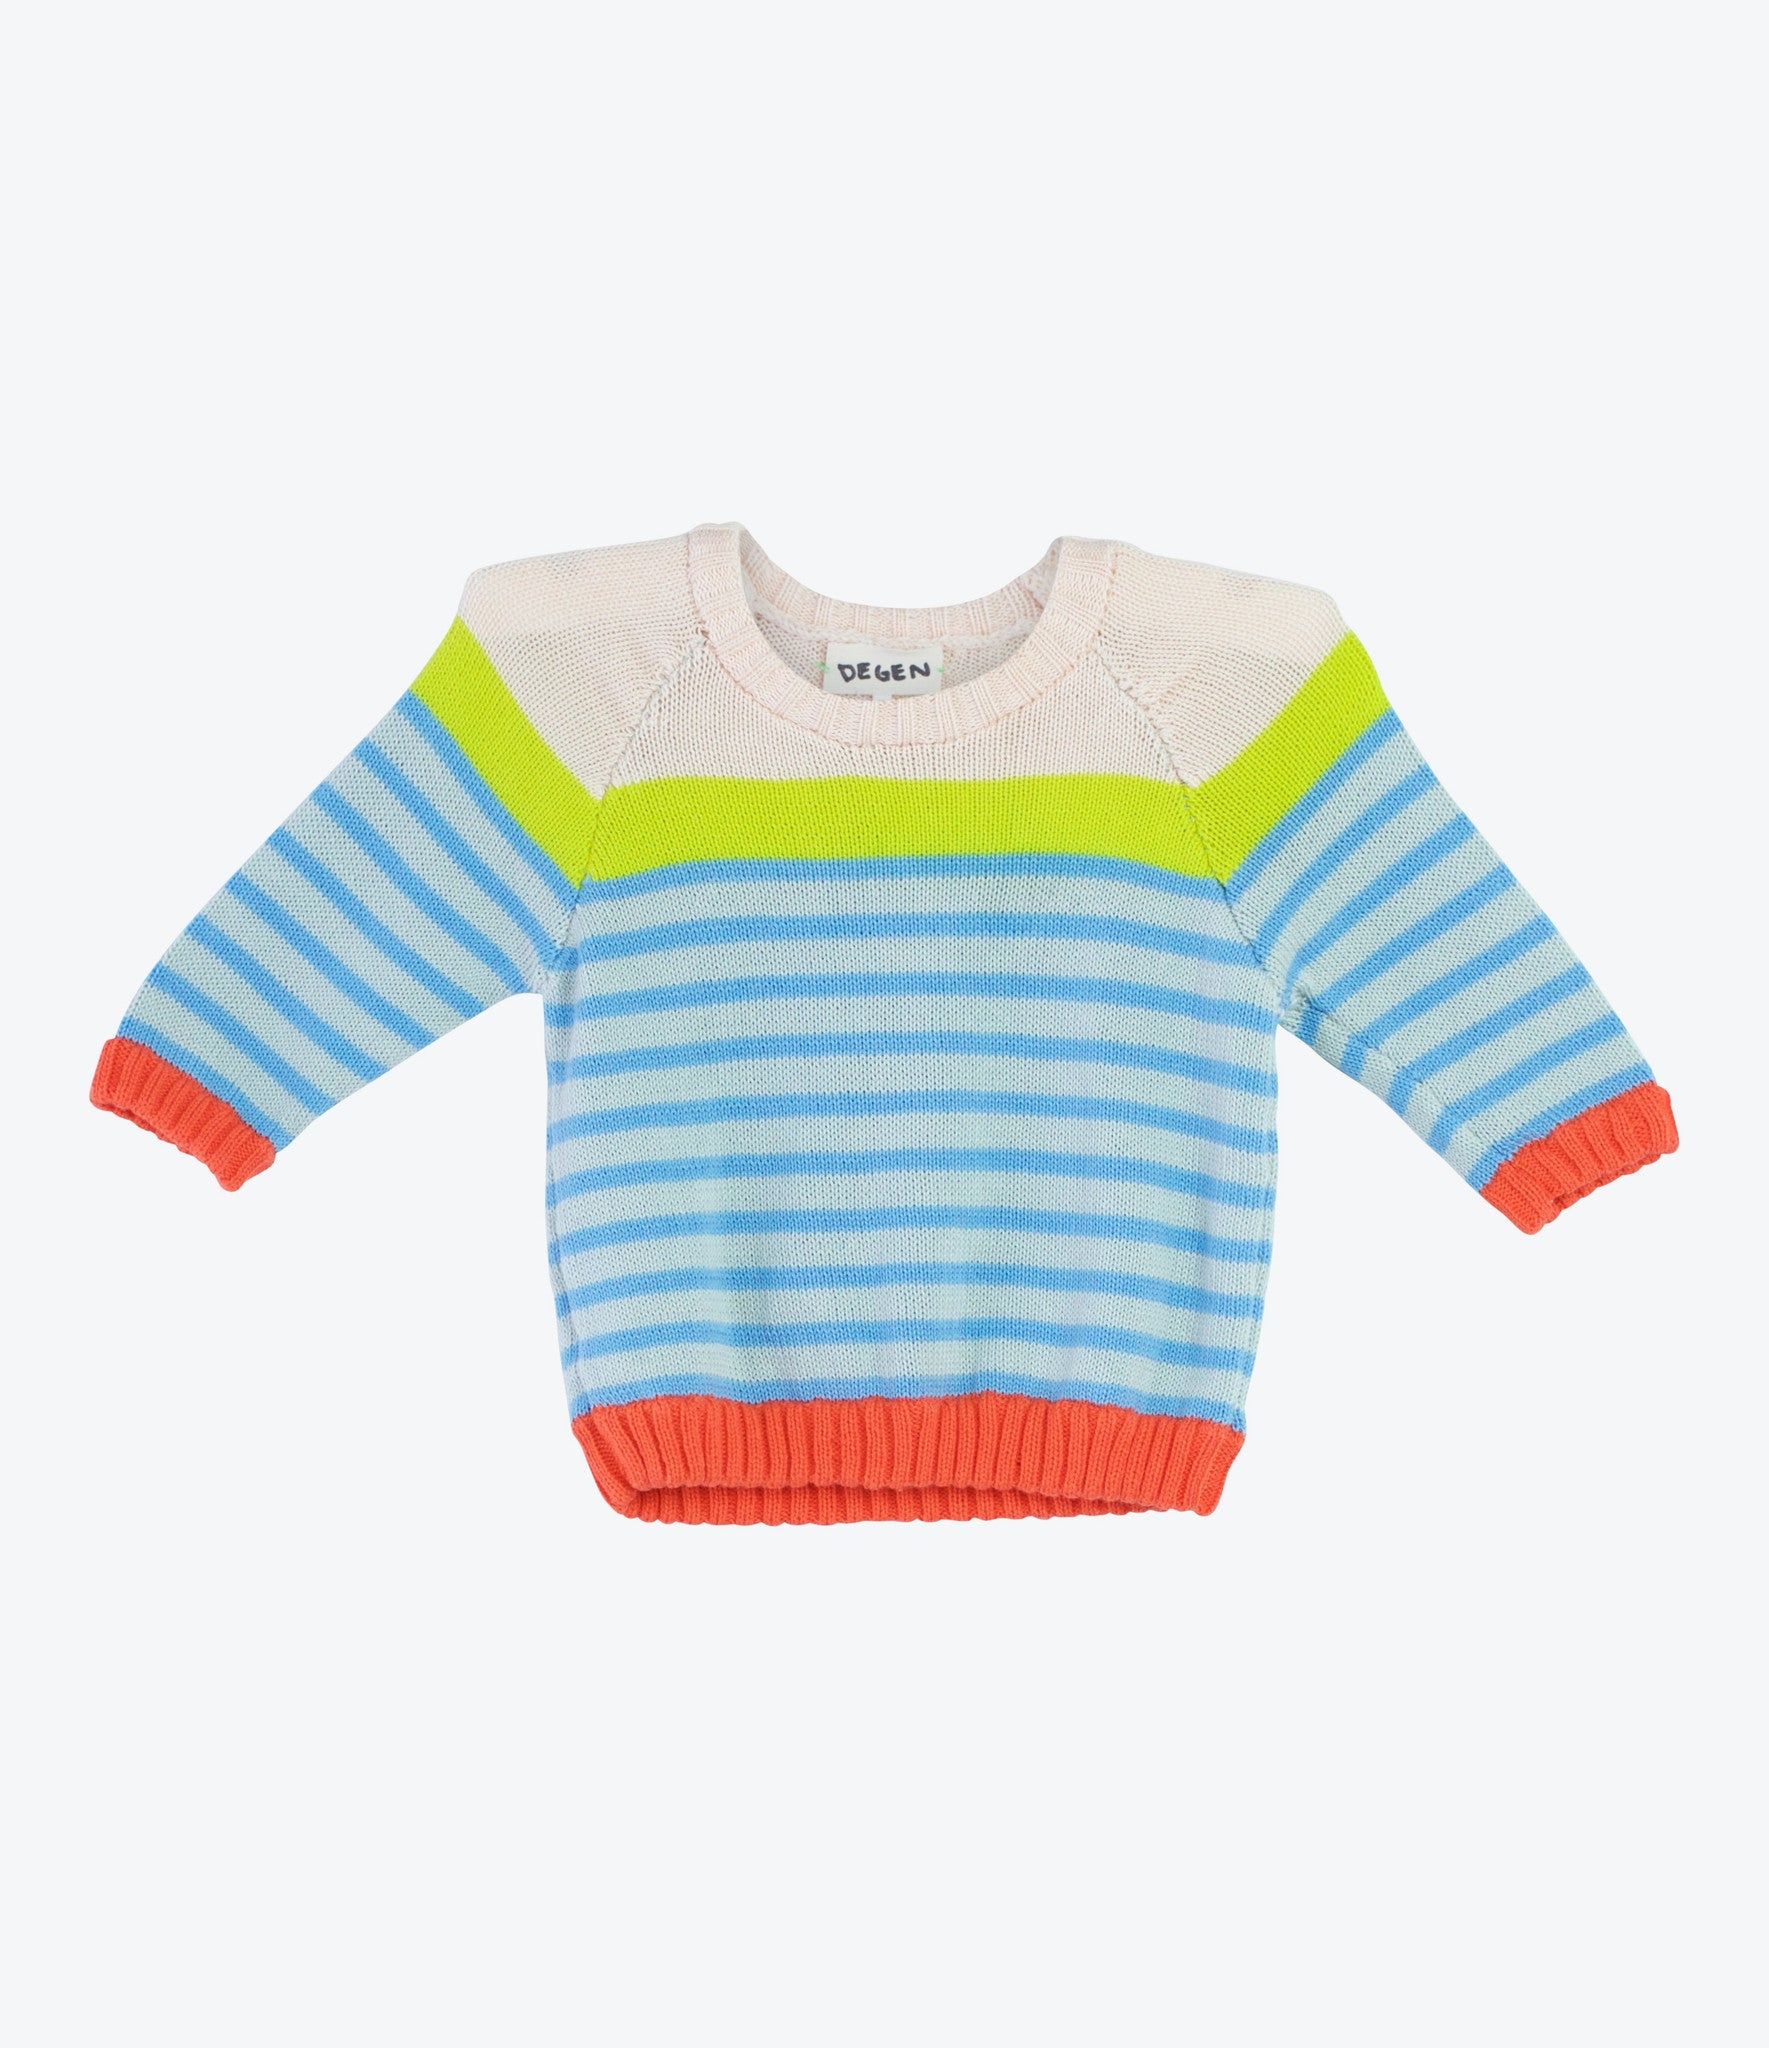 Baby Degen, Hand Knitted Sweatshirt, jumper, pullover. Finest spanish cotton, fun bright colours. Find yours at Made Mini Store in Auckland NZ